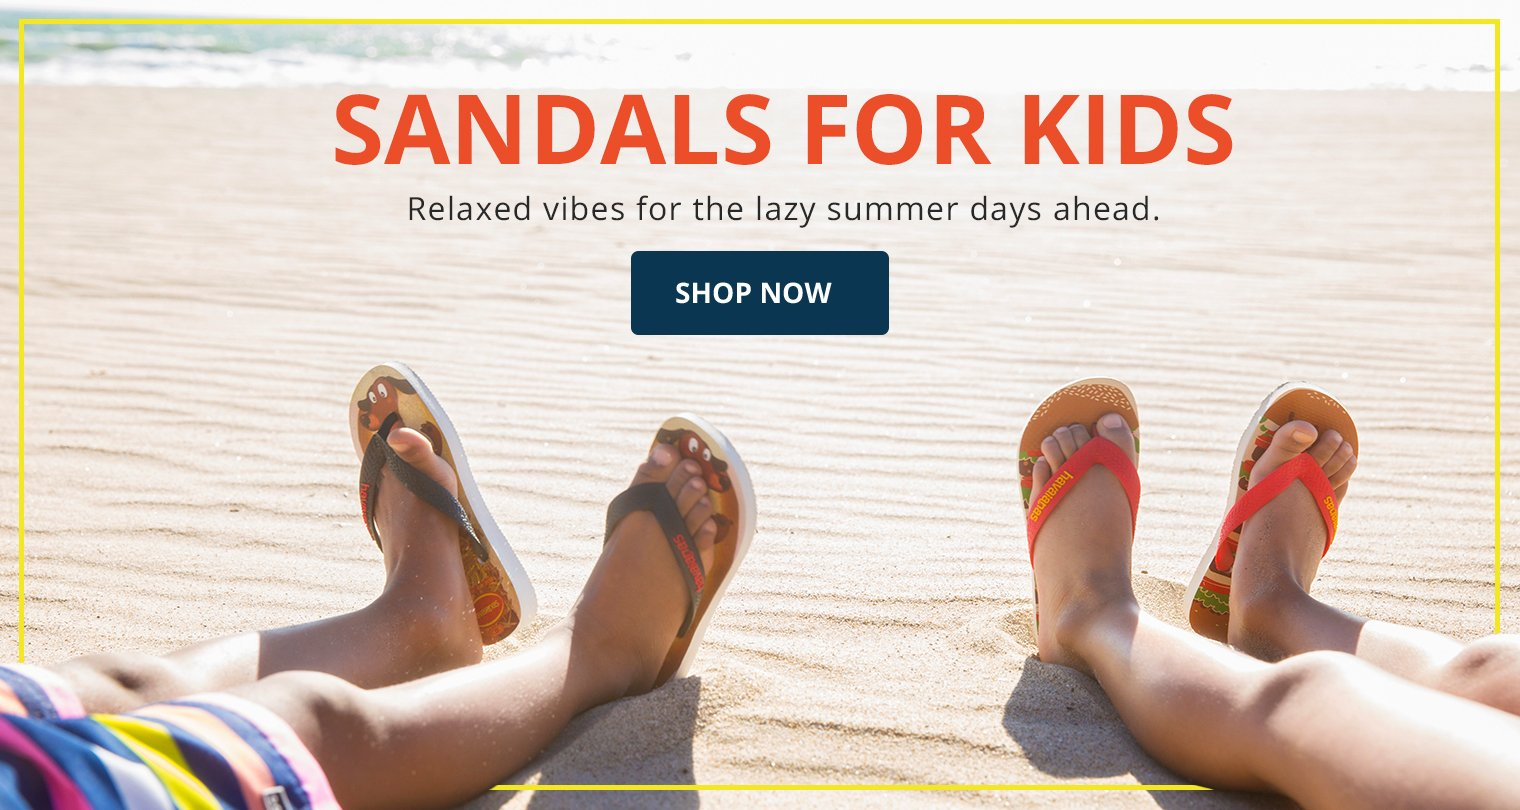 Sandals for Kids. Relaxed vibes for the lazy summer days ahead. Shop Now.